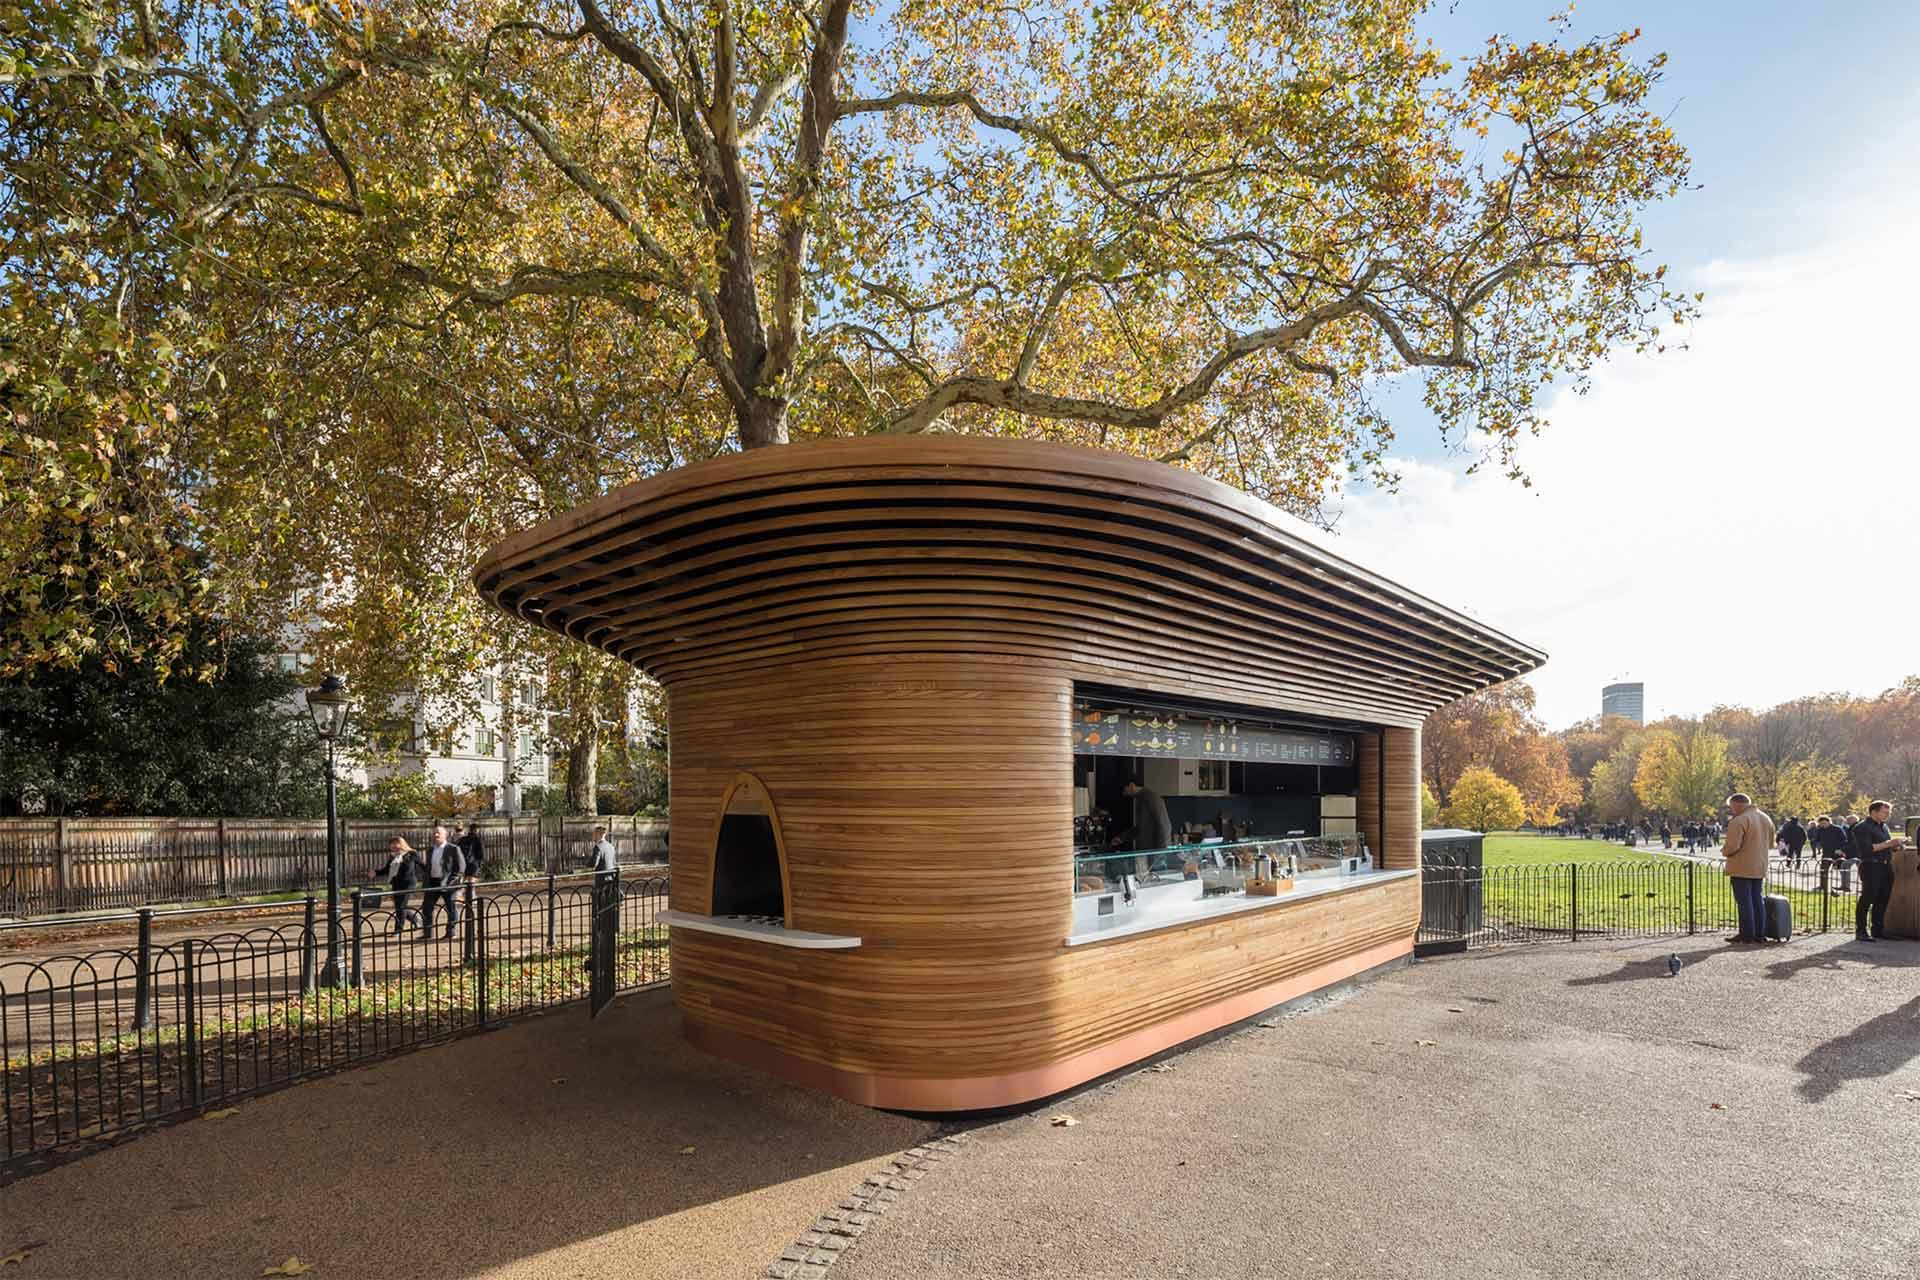 Colicci Kiosk in London, UK